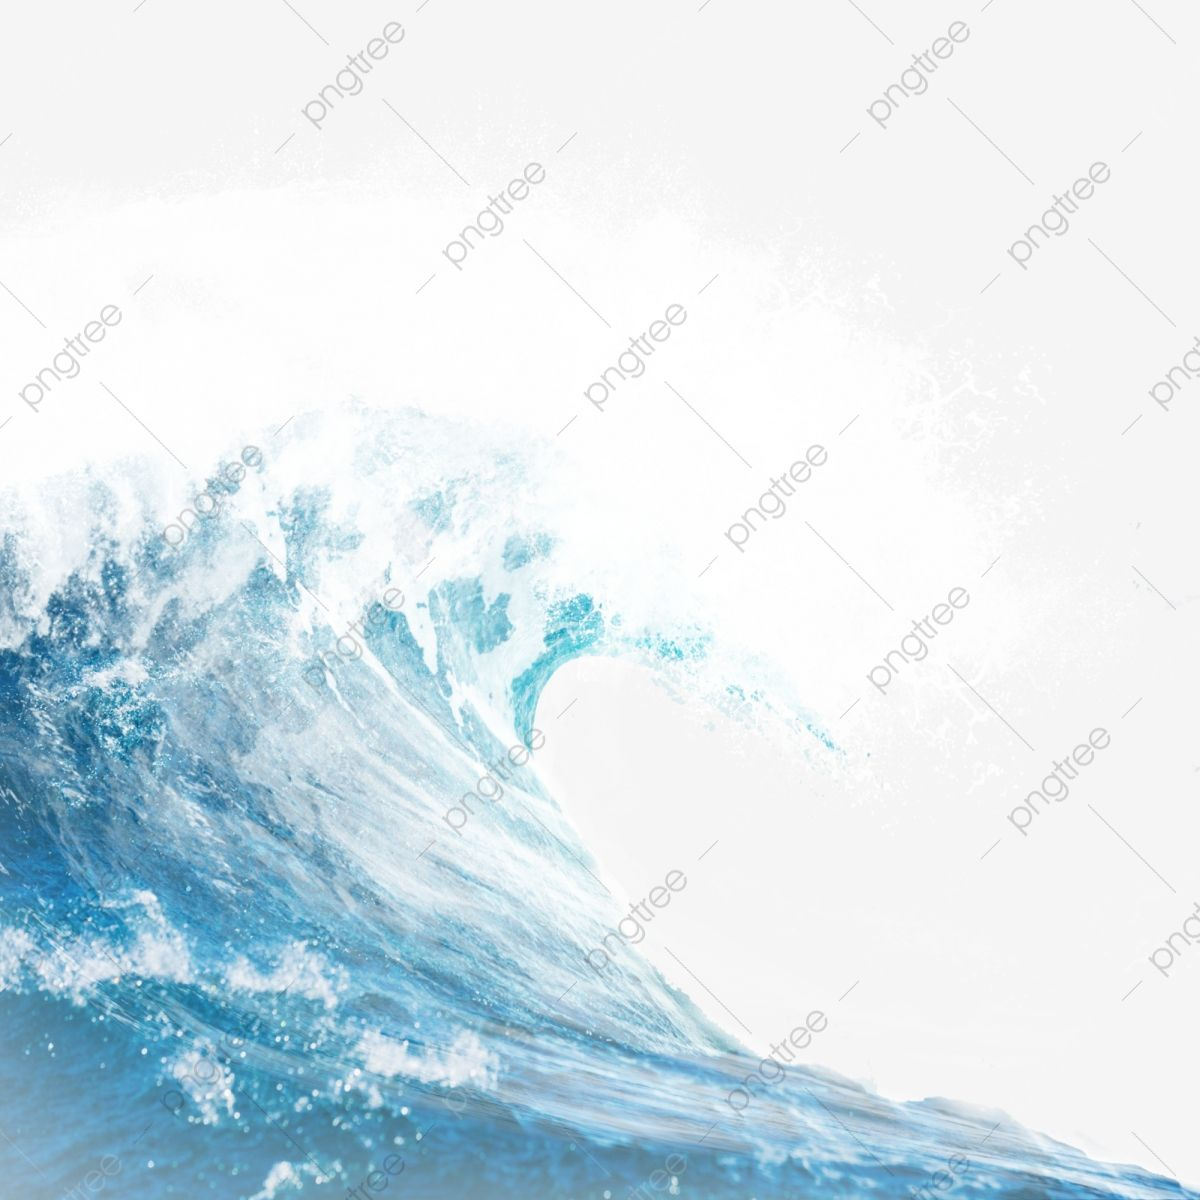 Water Effect Blue Water Wave Splashing Spray White Spray Water Wave Water Wave Png Transparent Clipart Image And Psd File For Free Download Water Effect Water Patterns Waves Background